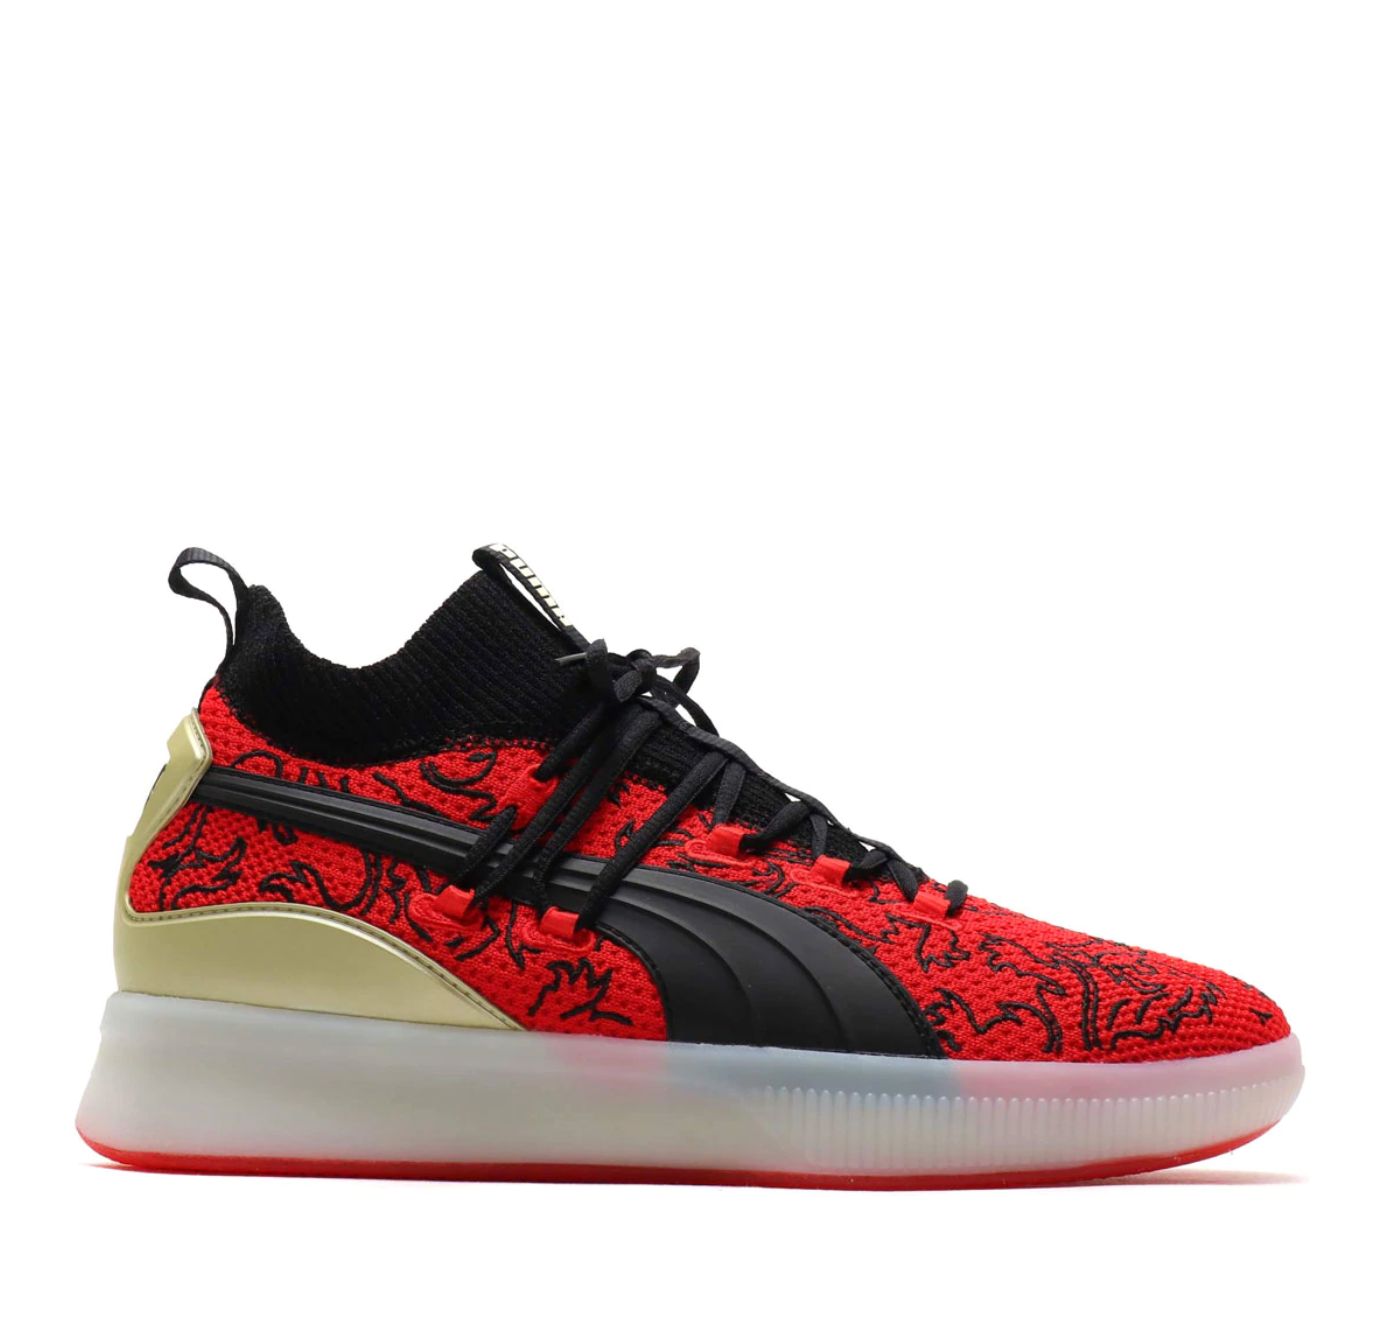 brand new 36917 a9767 PUMA CLYDE COURT LONDON CALLING - HIGH RISK RED – Atmos New York